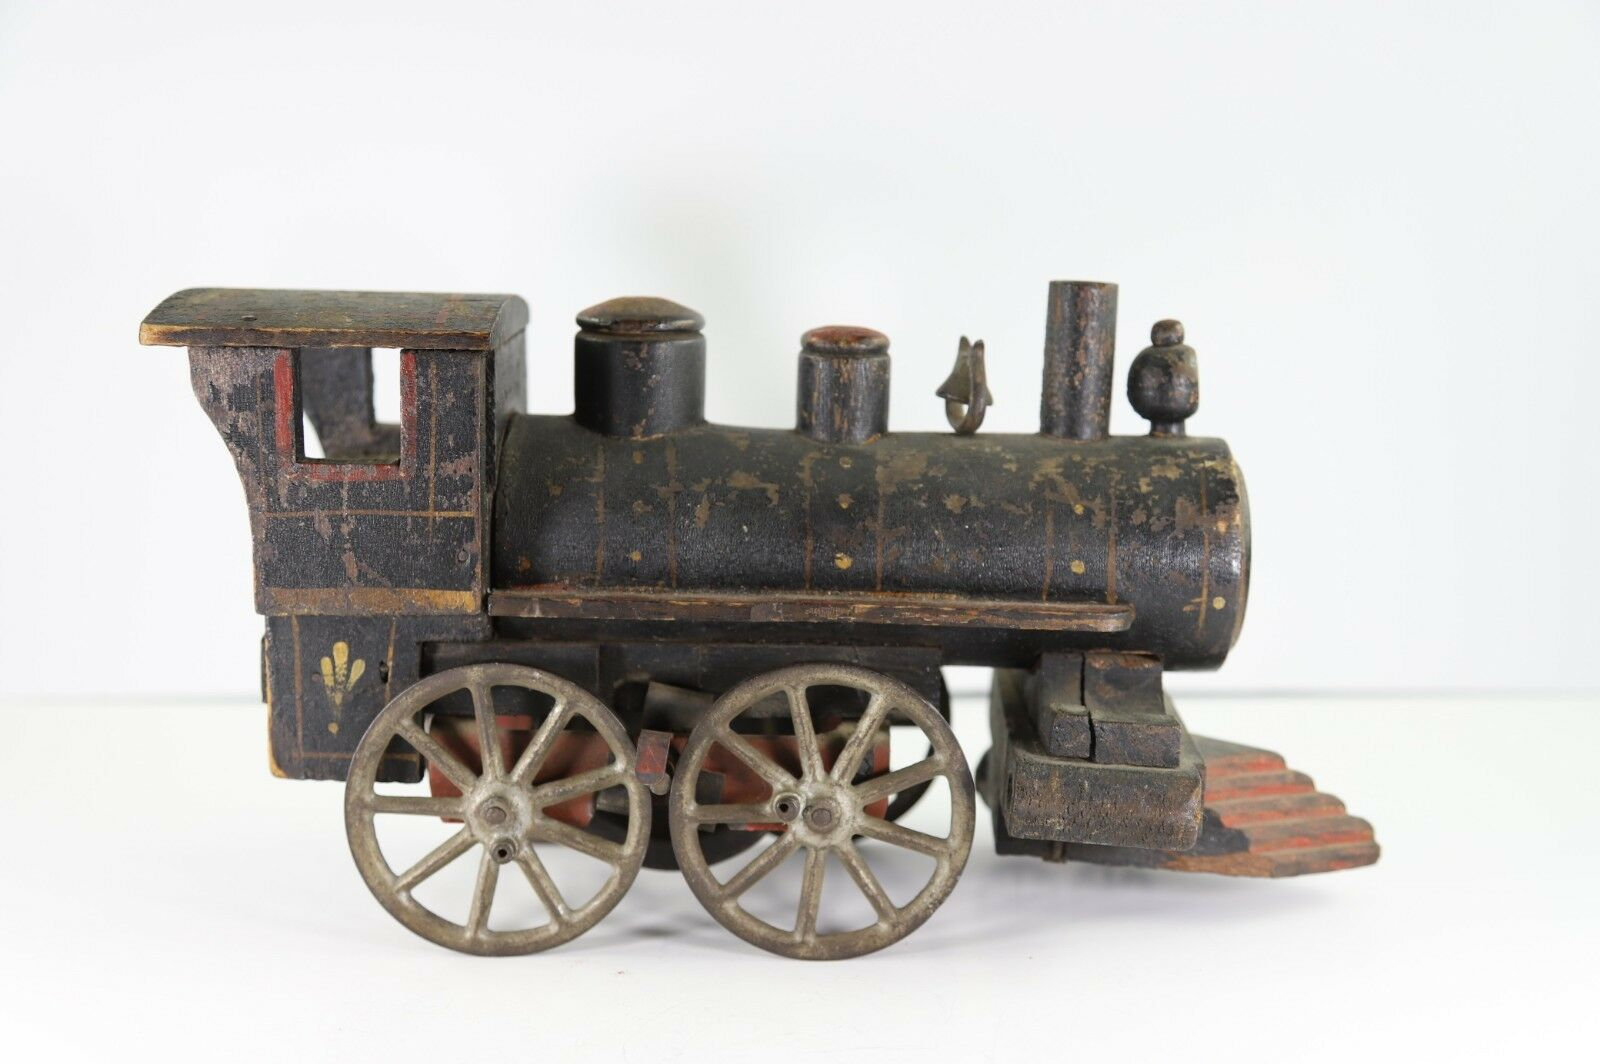 Antique Wood Locomotive Floor Toy with Metal Wheels and Original Painted Finish